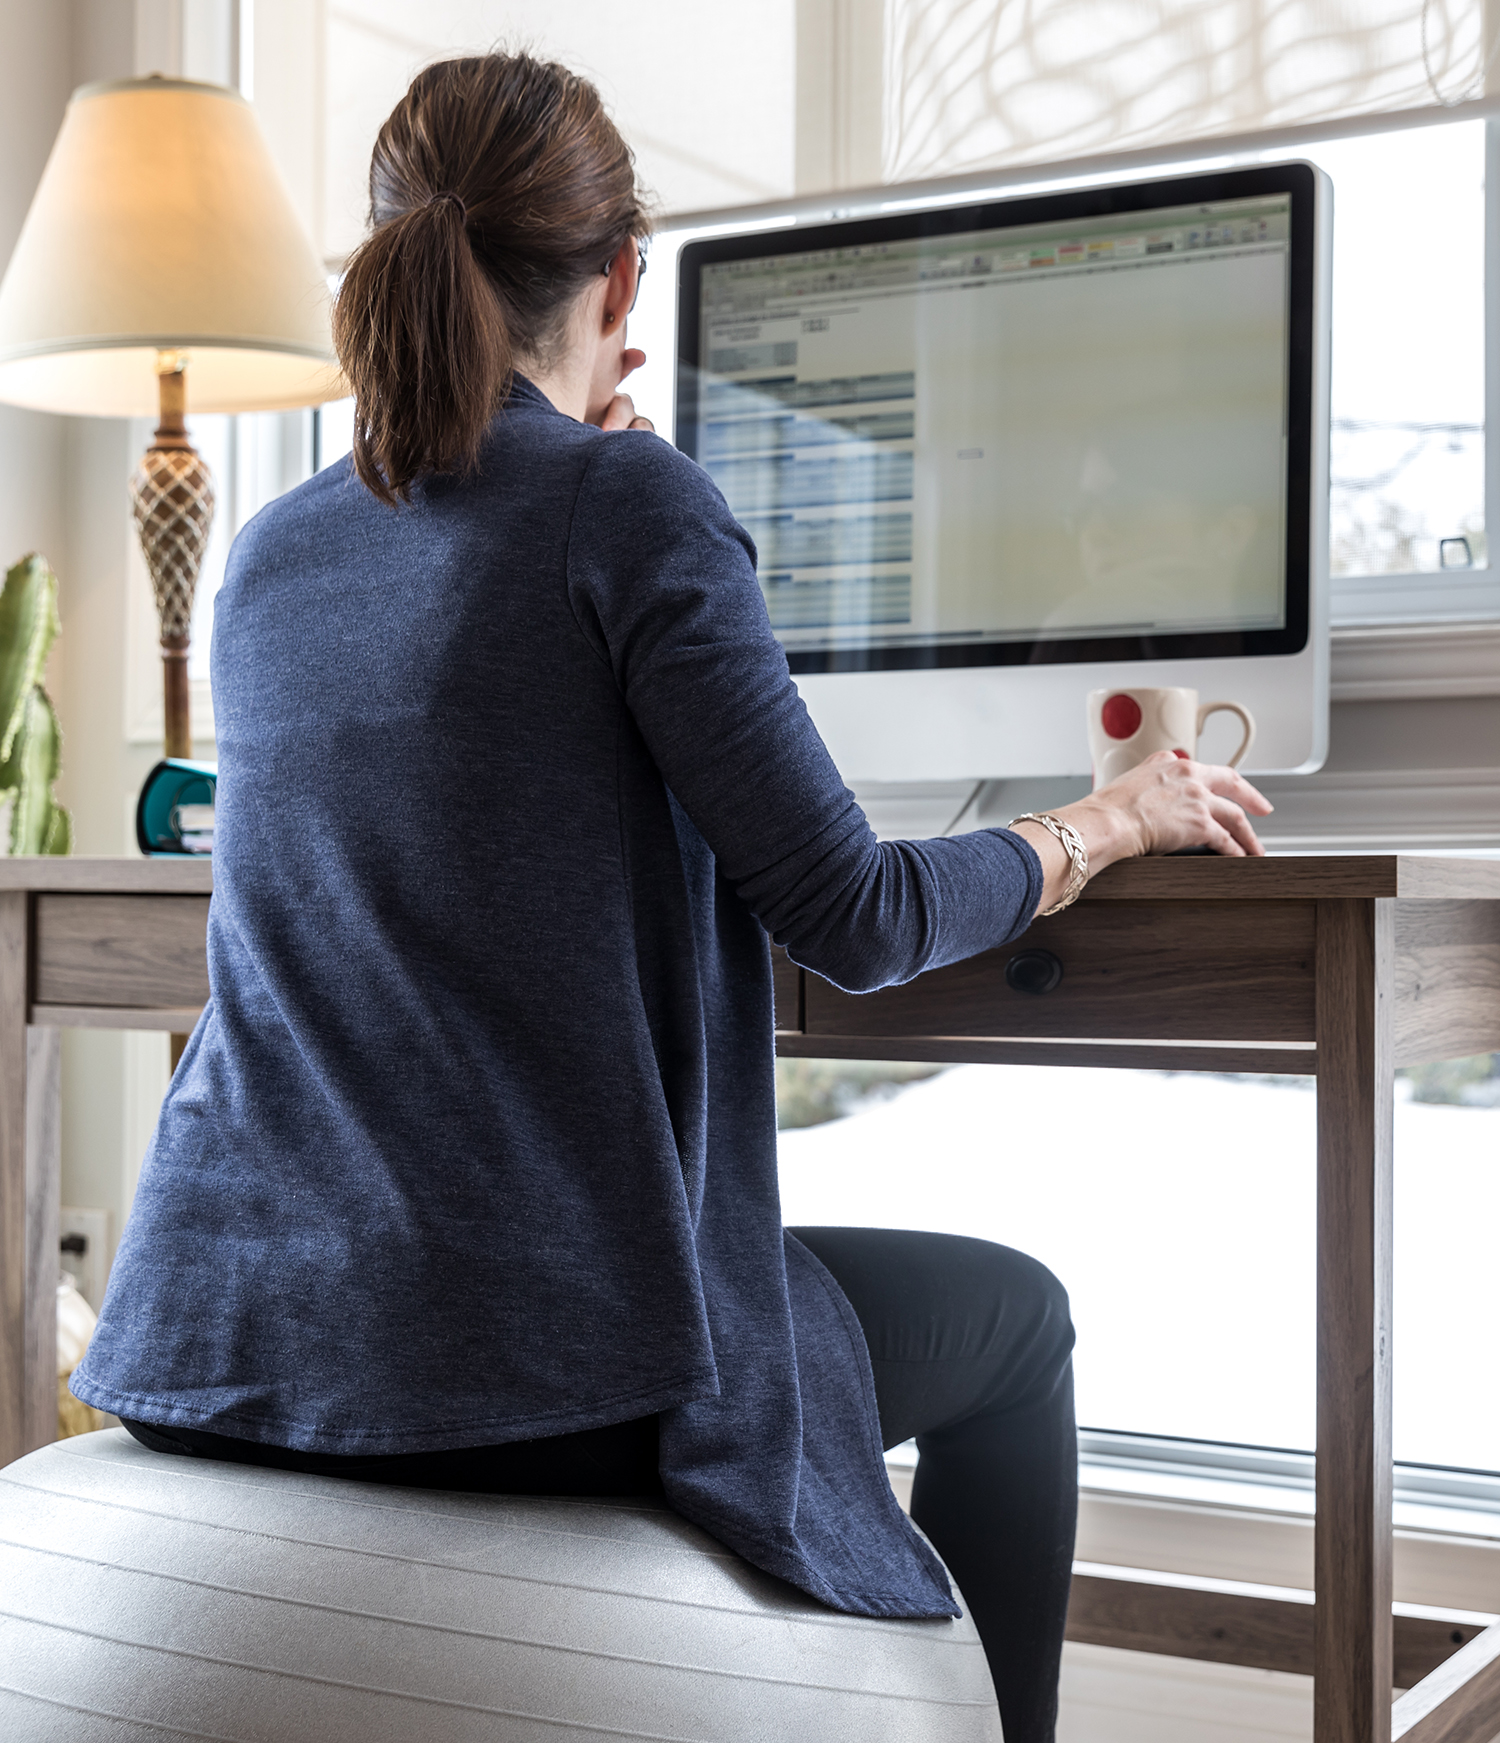 Woman Working From Home facing window